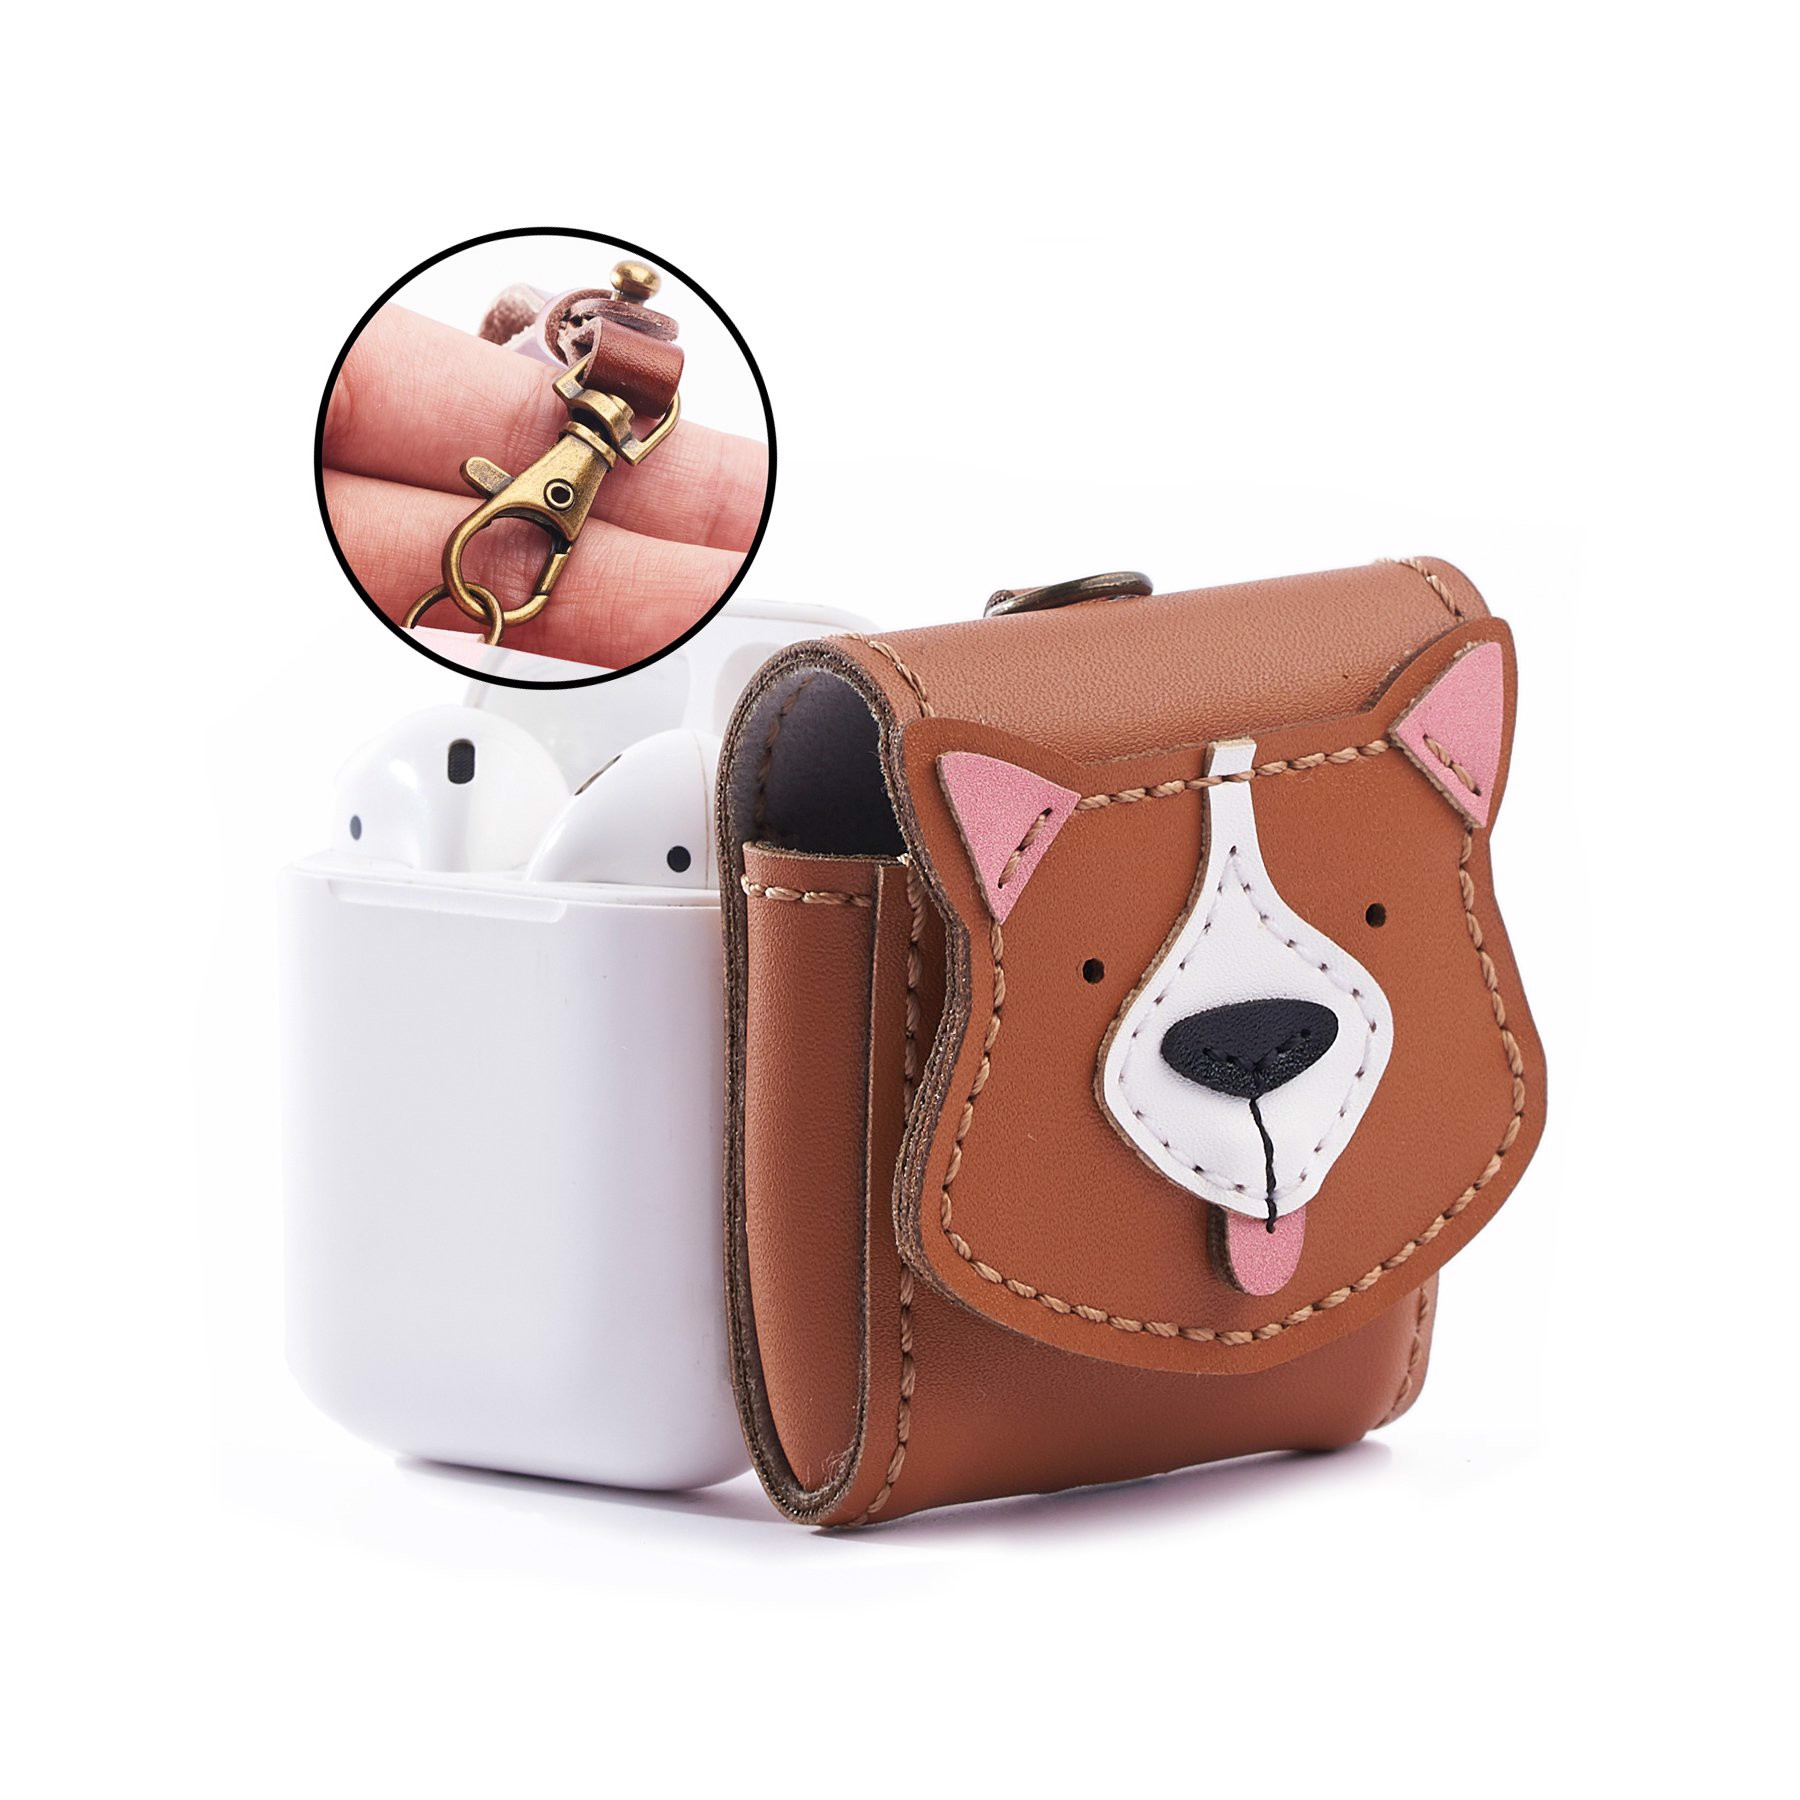 Bao Da Đựng Airpod Cún Corgi - Leather Airpod Case Corgi Edition